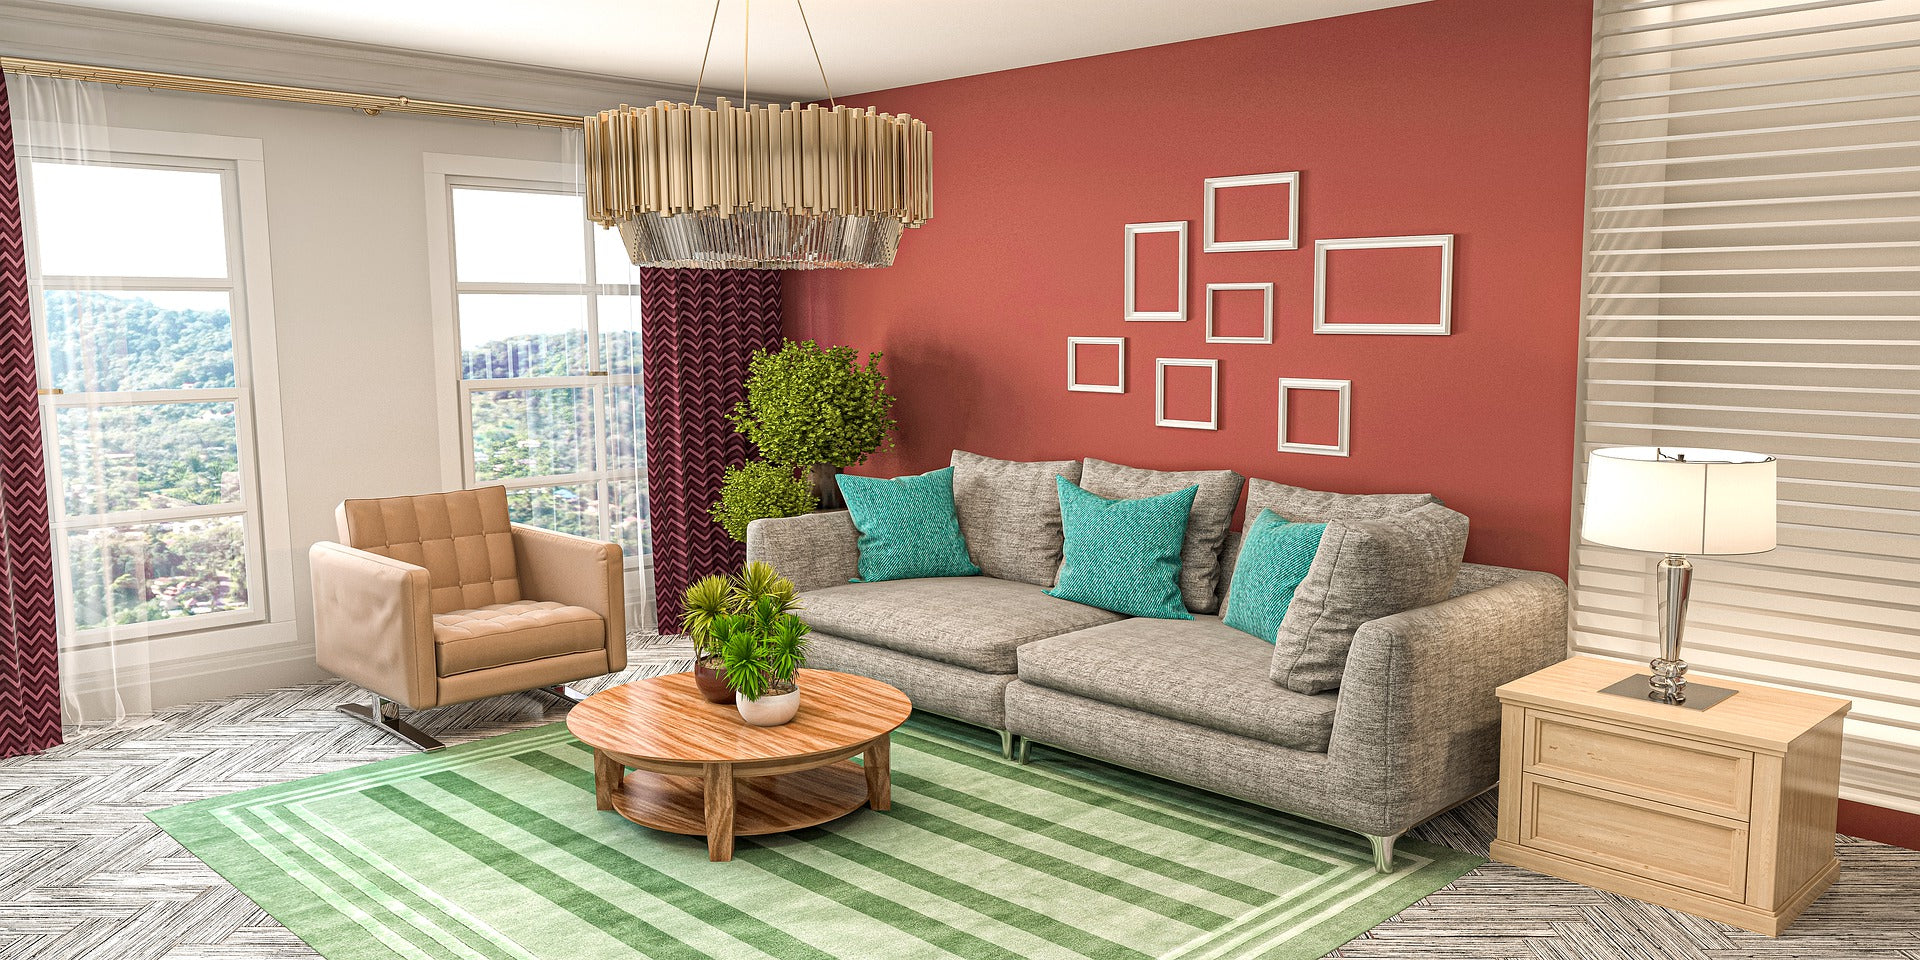 Top 32 Home Decor Ideas That Will Refresh Your Old Living Room ...